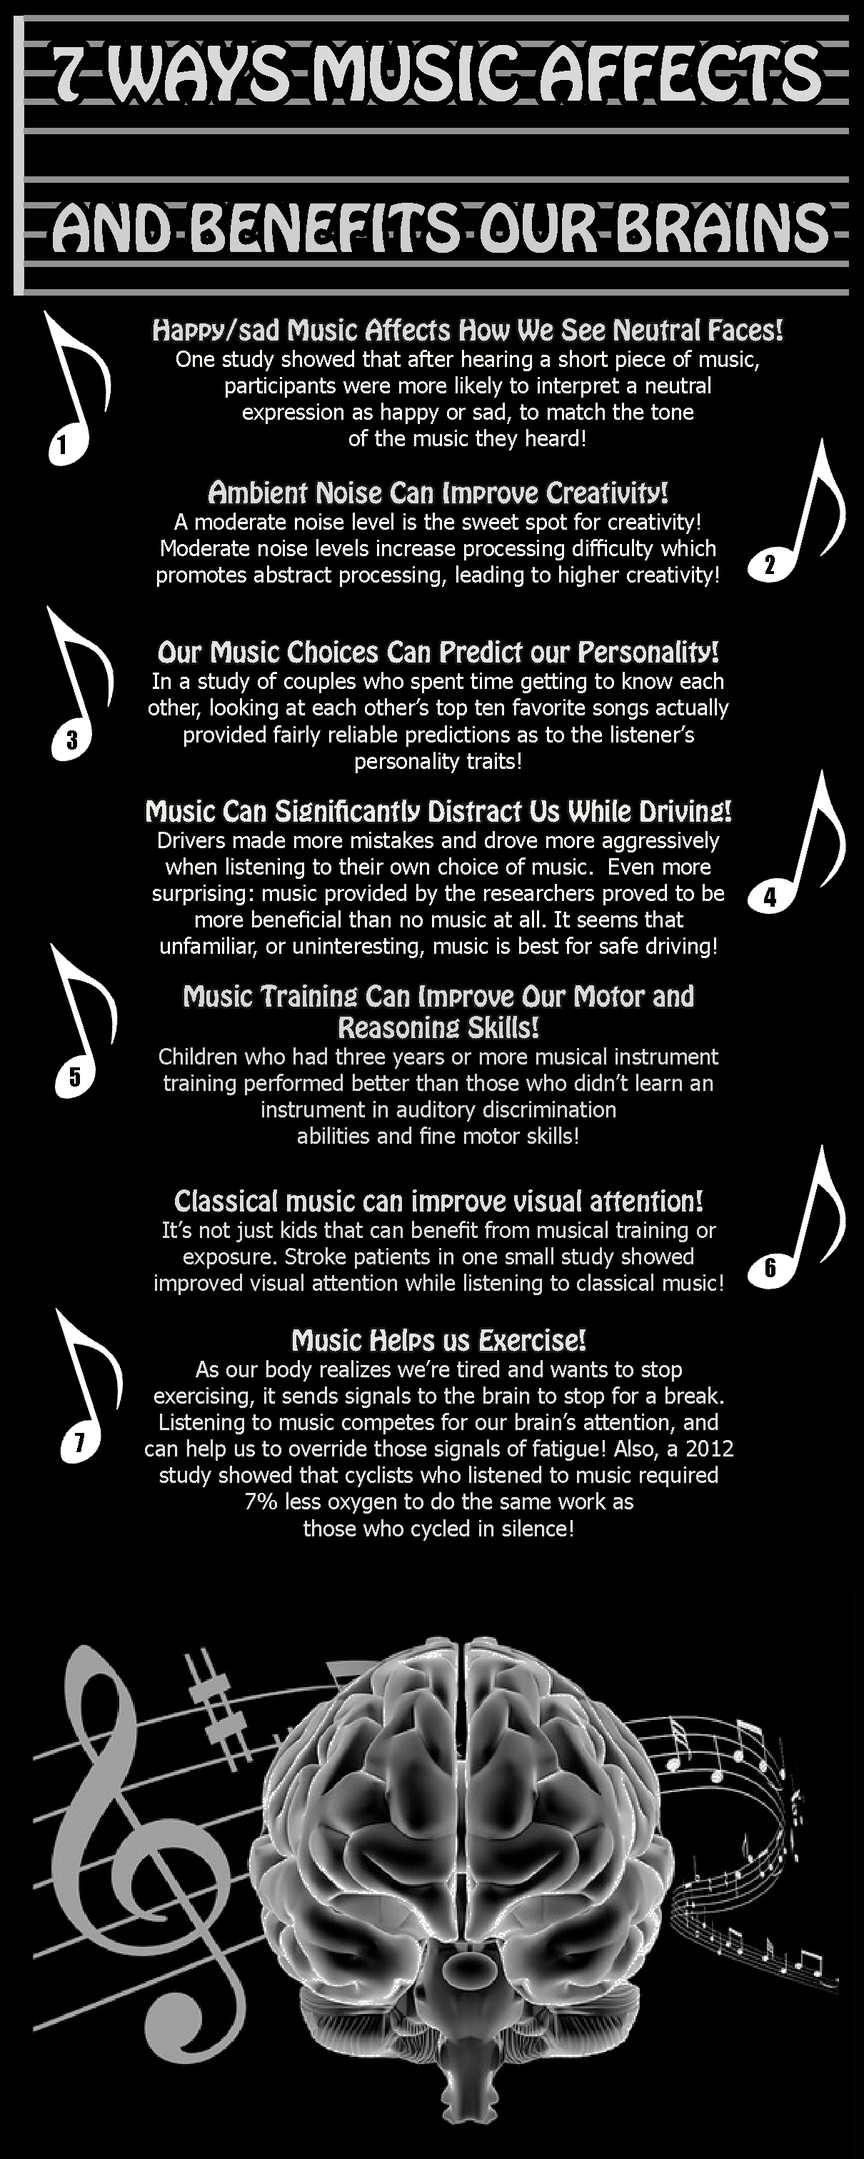 Calaméo - 7 Ways Music Affects and Benefits Your Brain